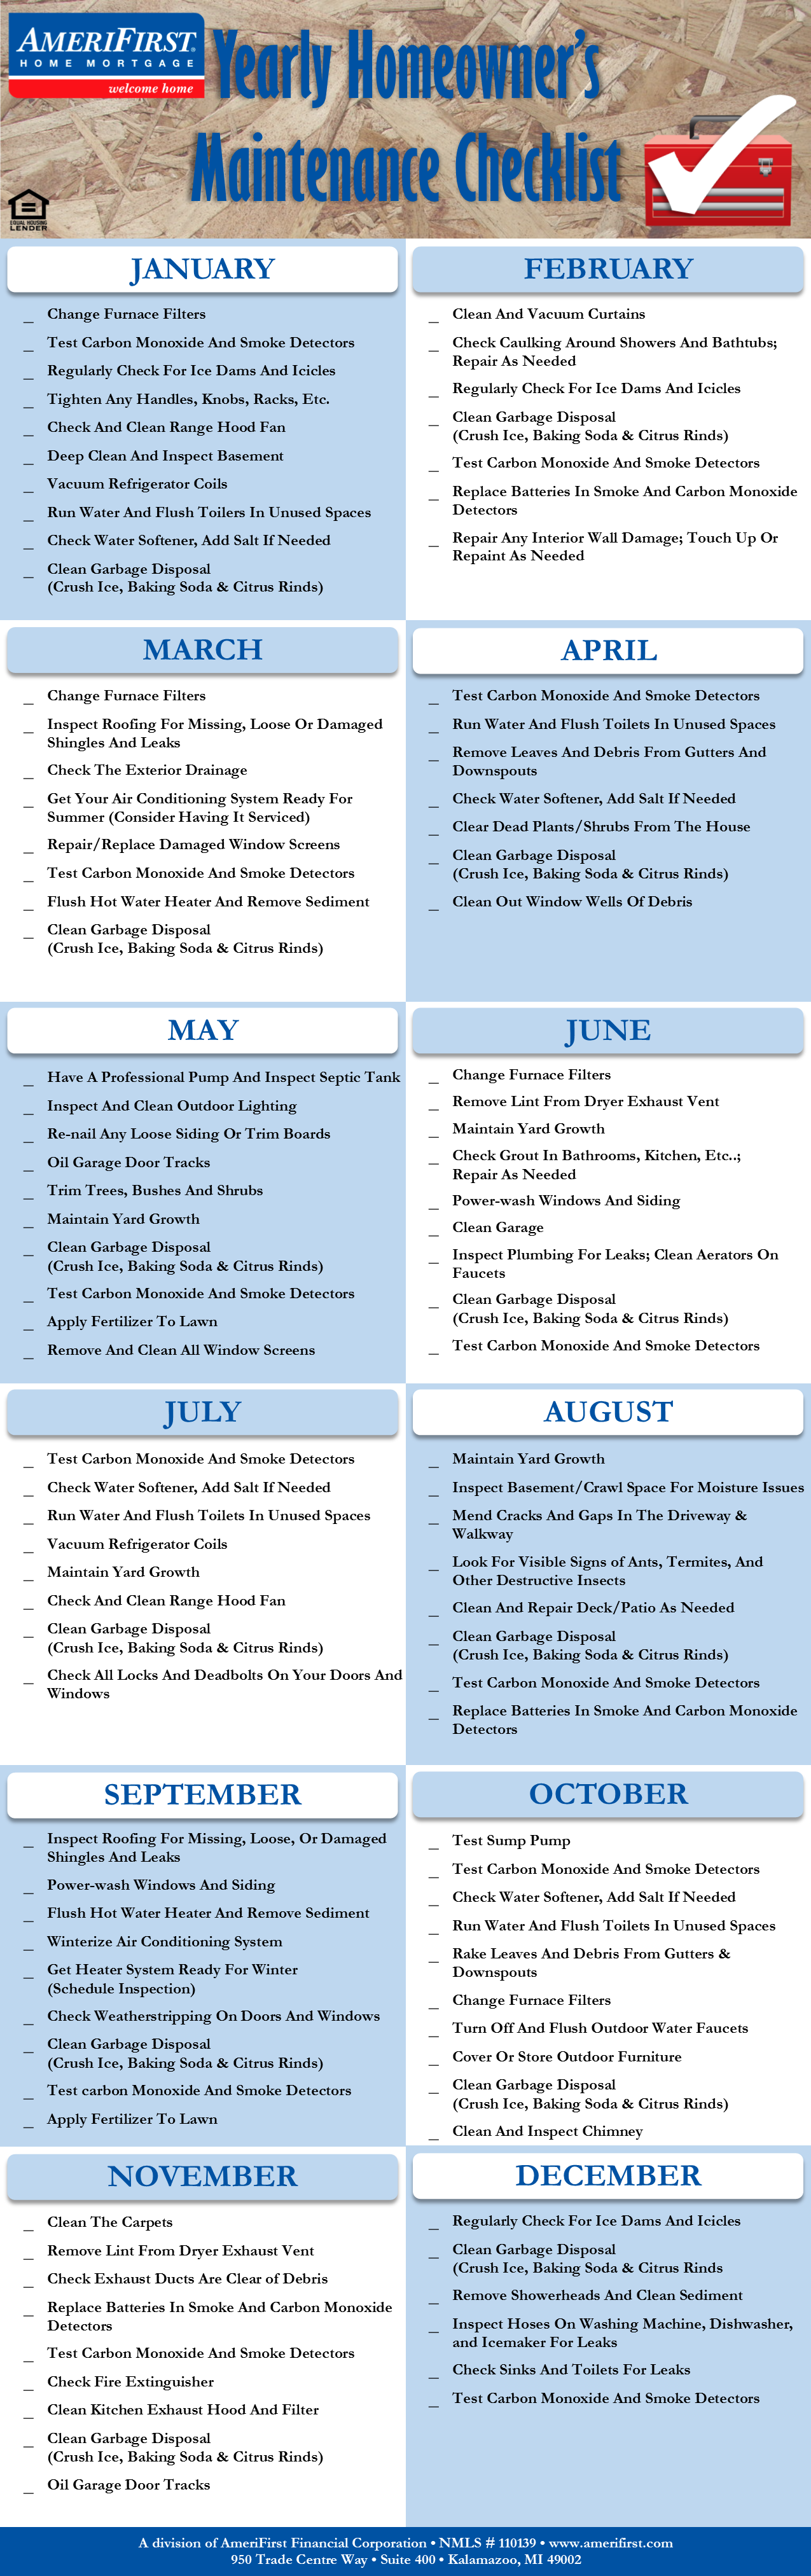 Yearly Home Maintenance Checklist Get organized by the month so